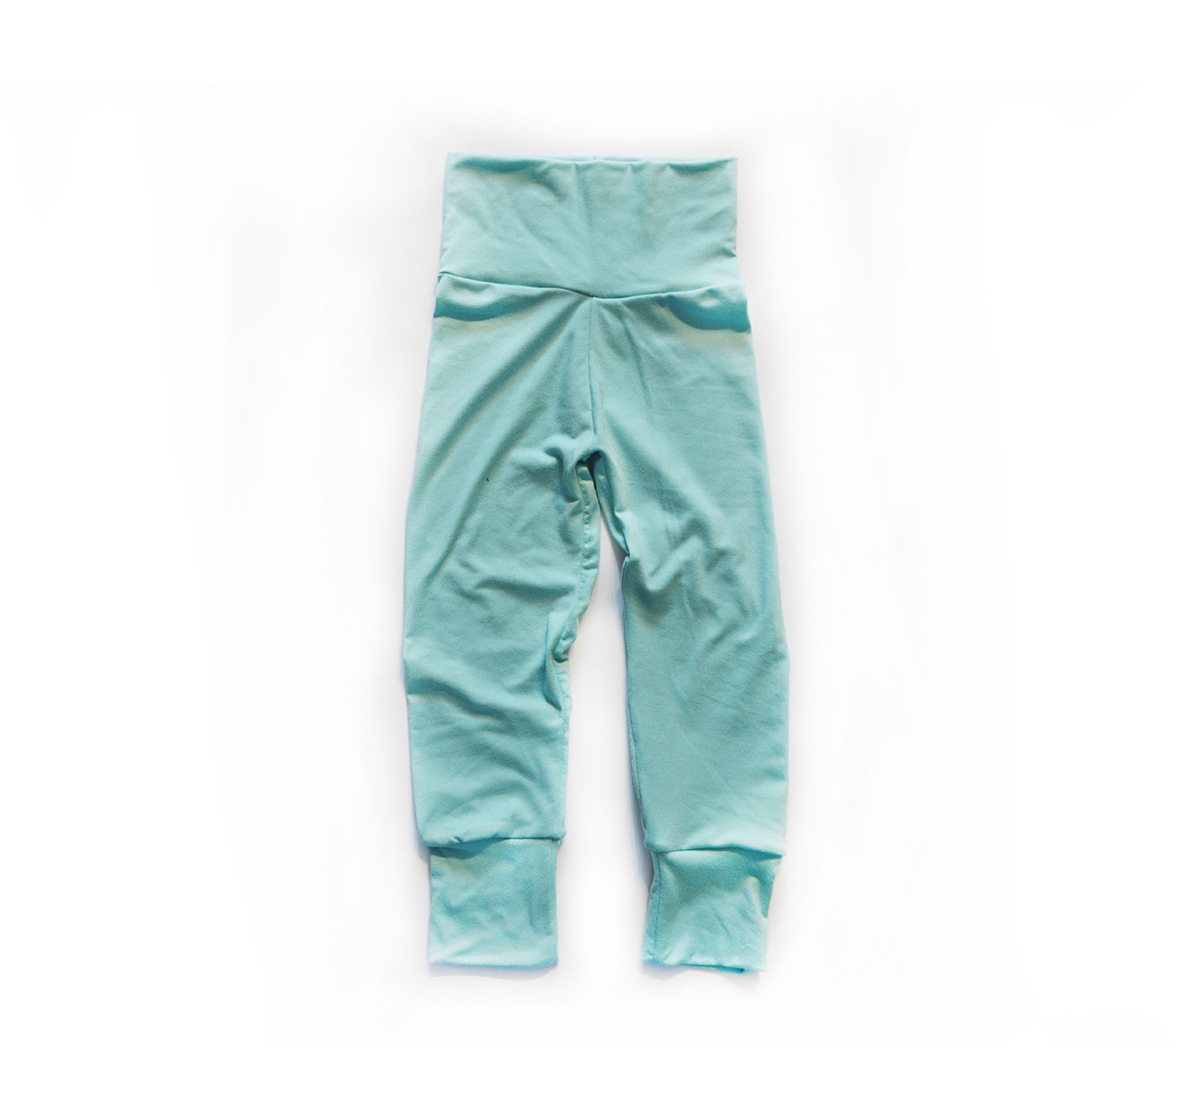 Little Sprout One-Size Pants™ Mint Green - Stretch 00902